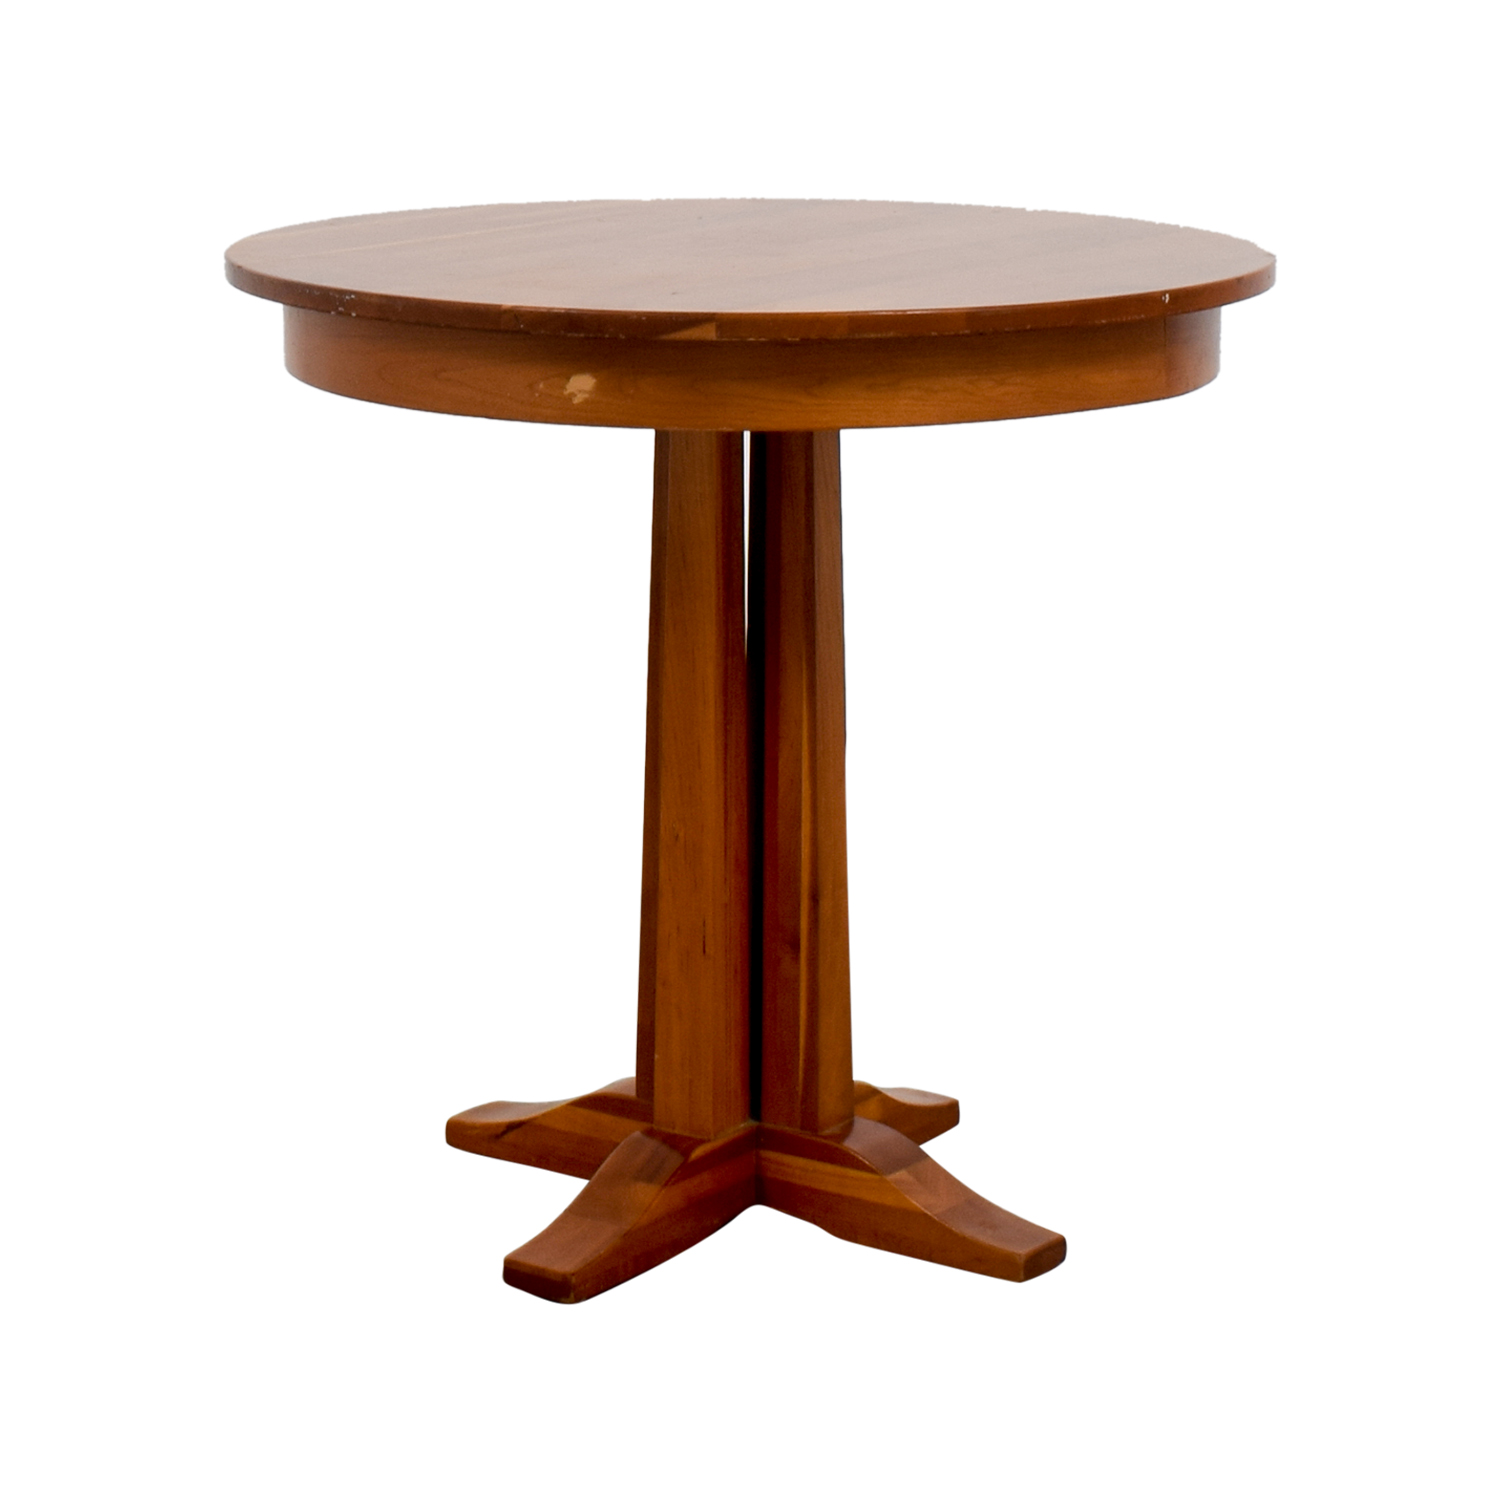 Round Wood Dining Table second hand